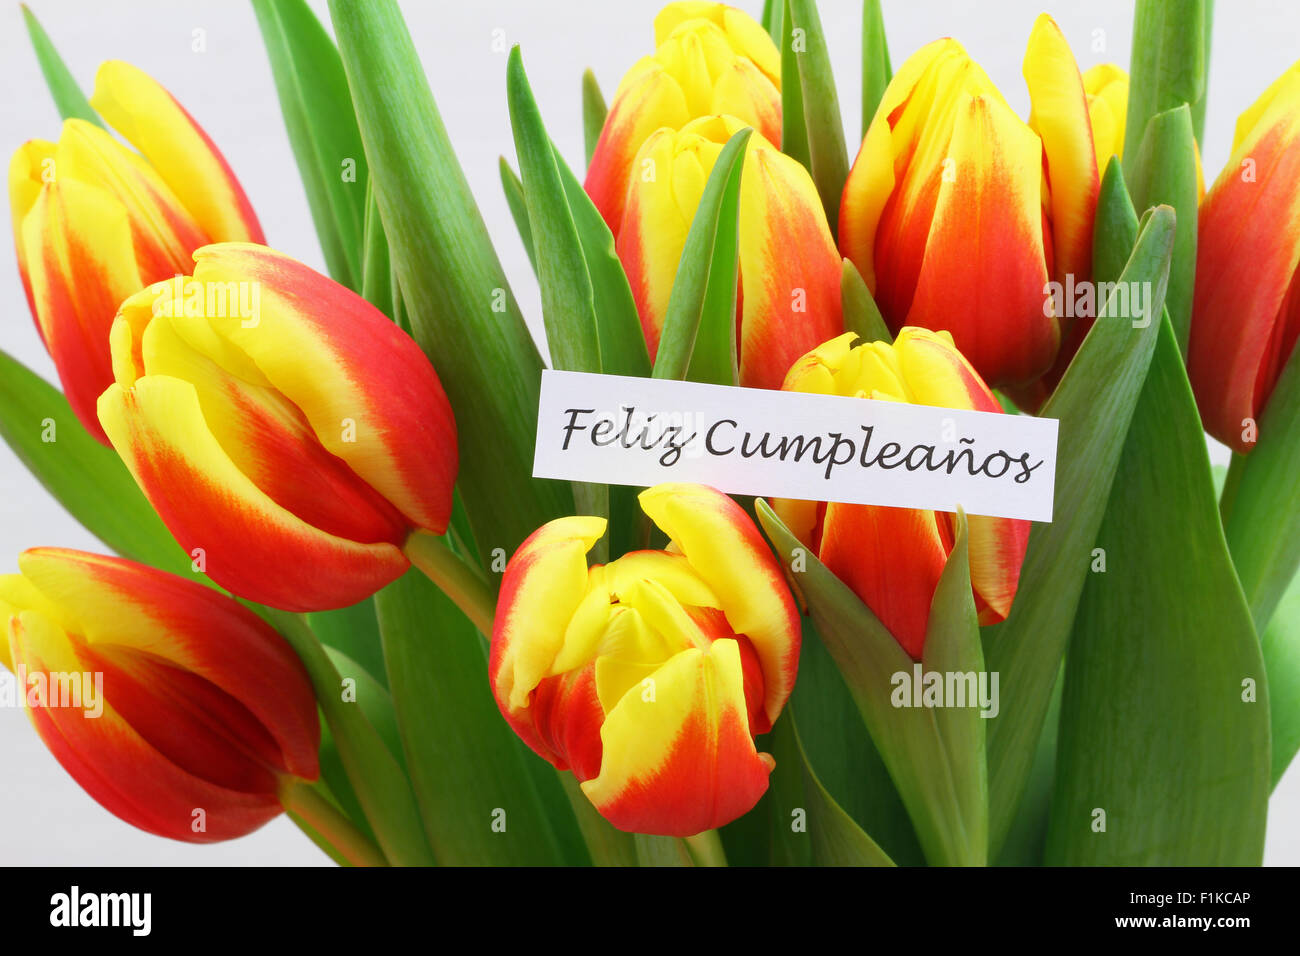 Feliz Cumpleanos Which Means Happy Birthday In Spanish Card With Colorful Tulips